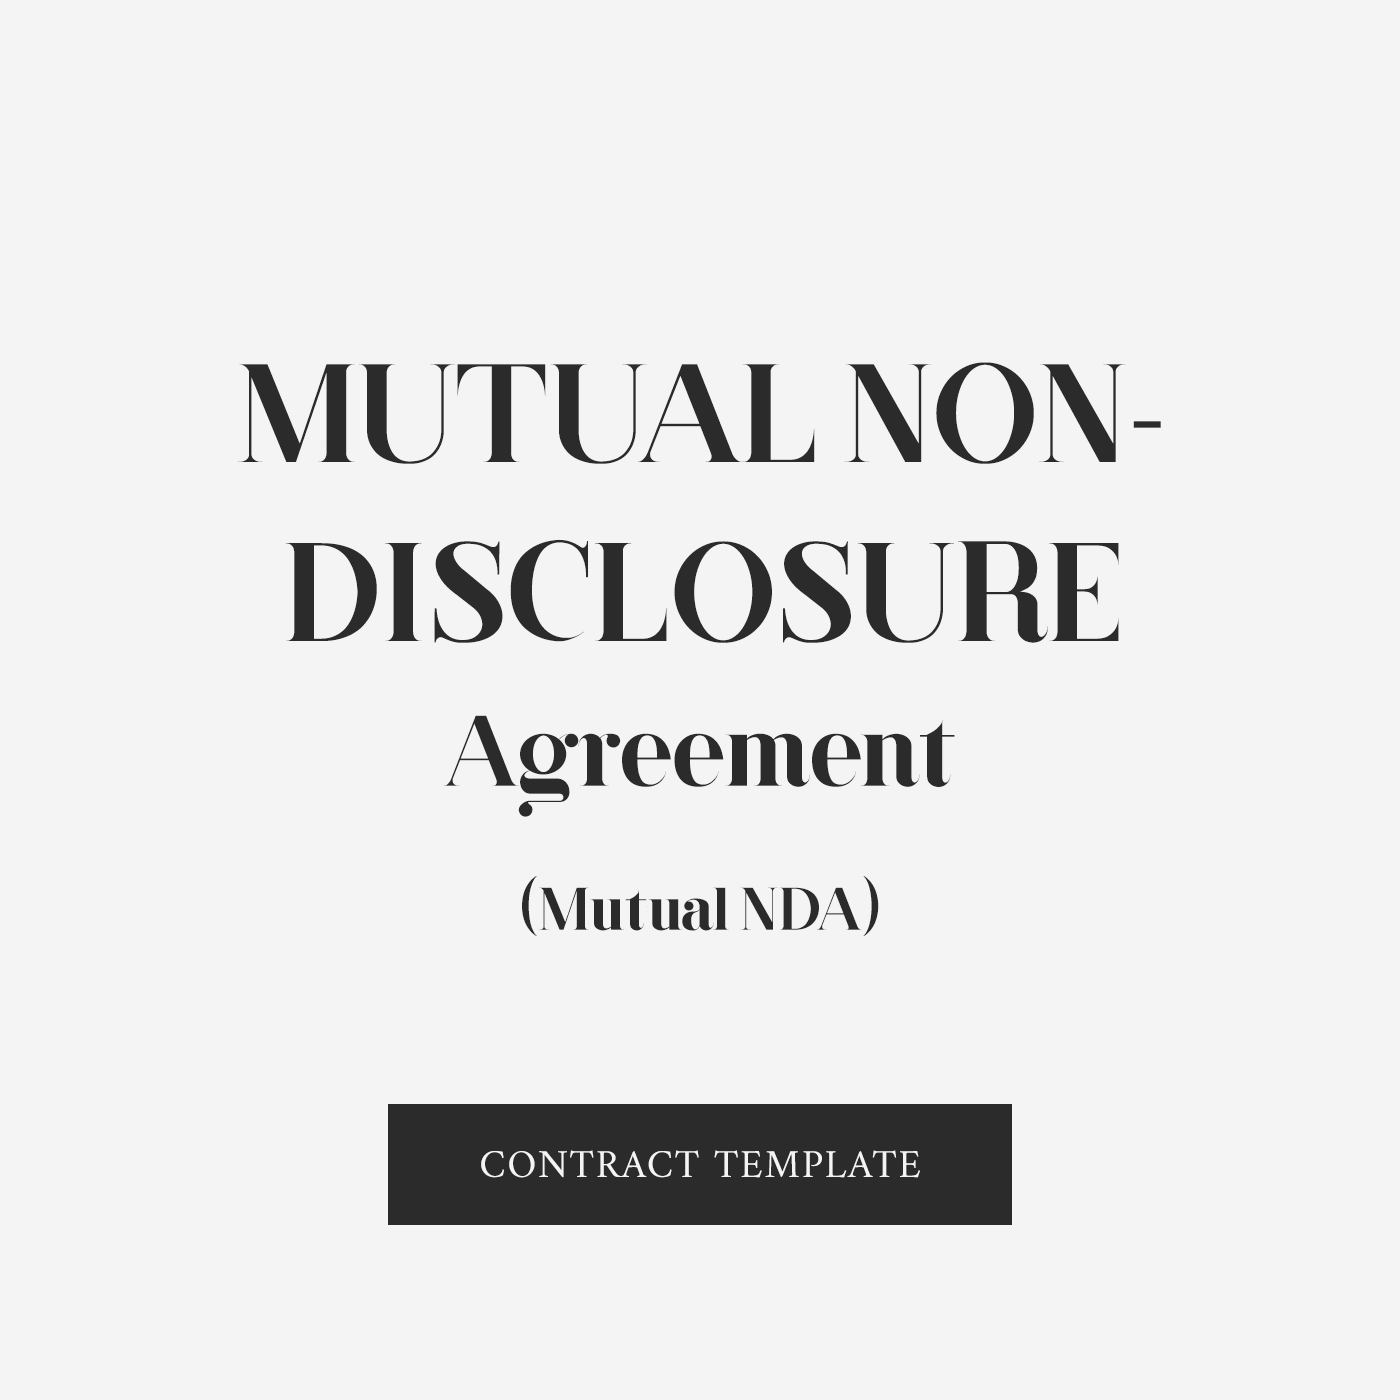 Pin on Contract Templates